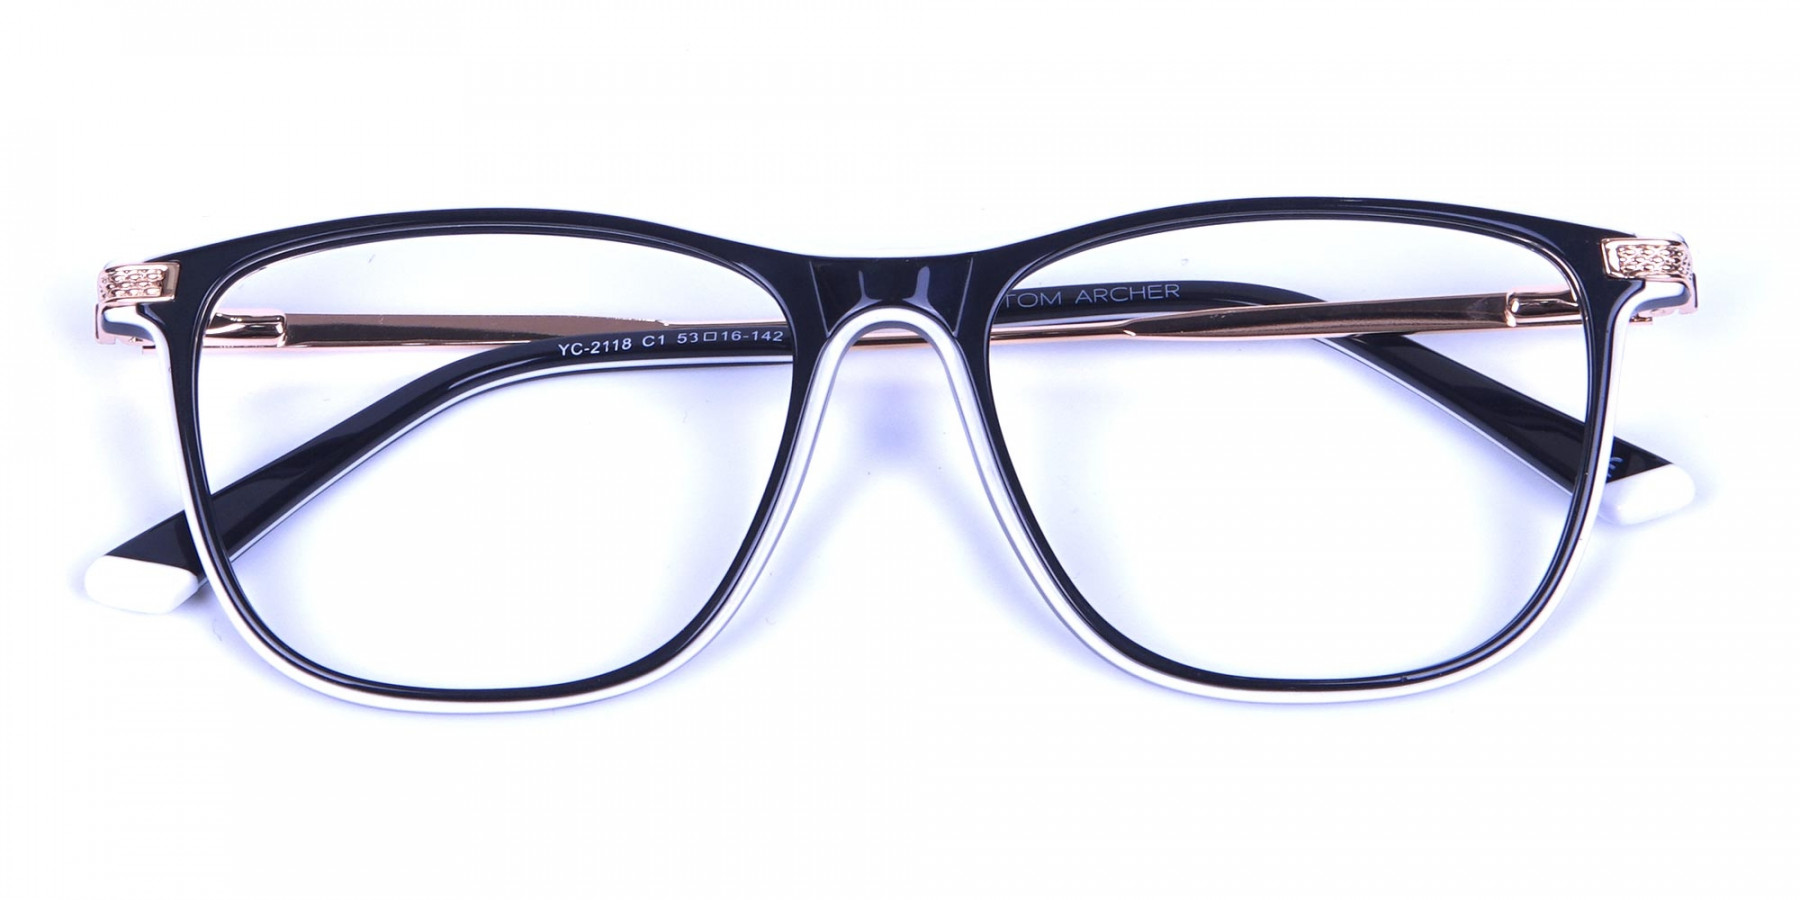 Black & White with Gold Arm Frames